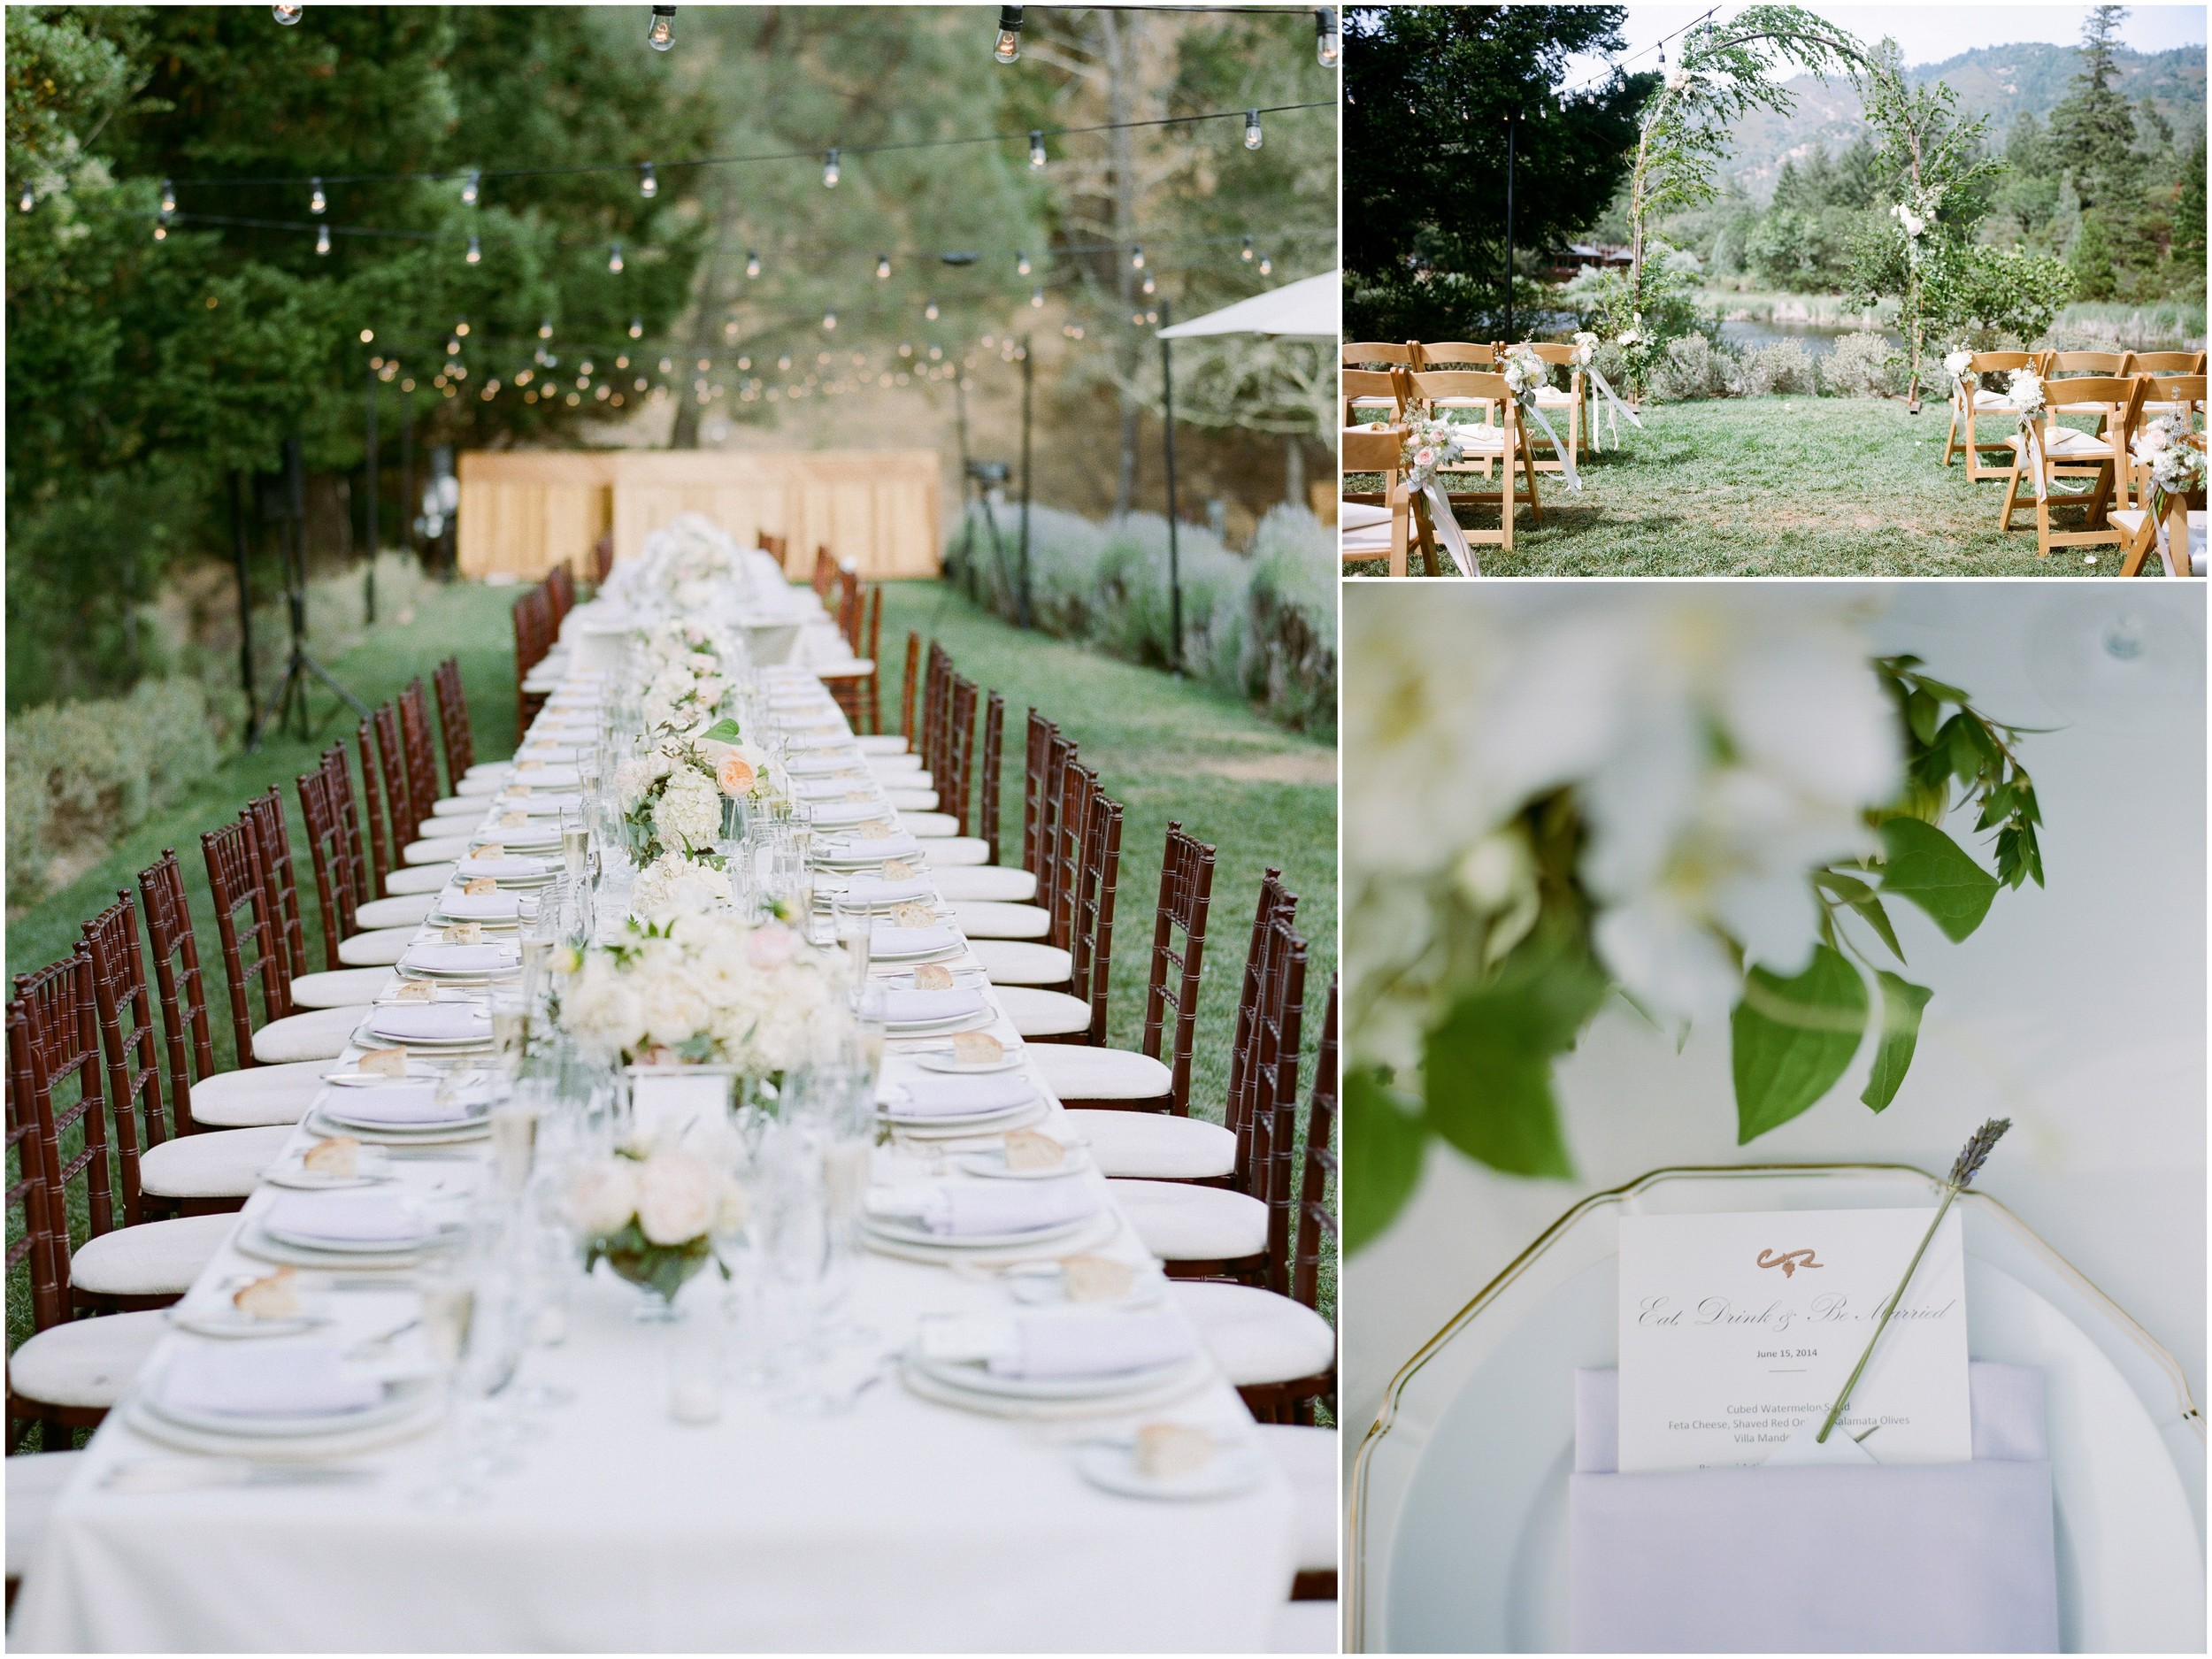 L'Relyea Events - Event Planning & Design - Calistoga Ranch, CA   Wedding venues in Wine Country